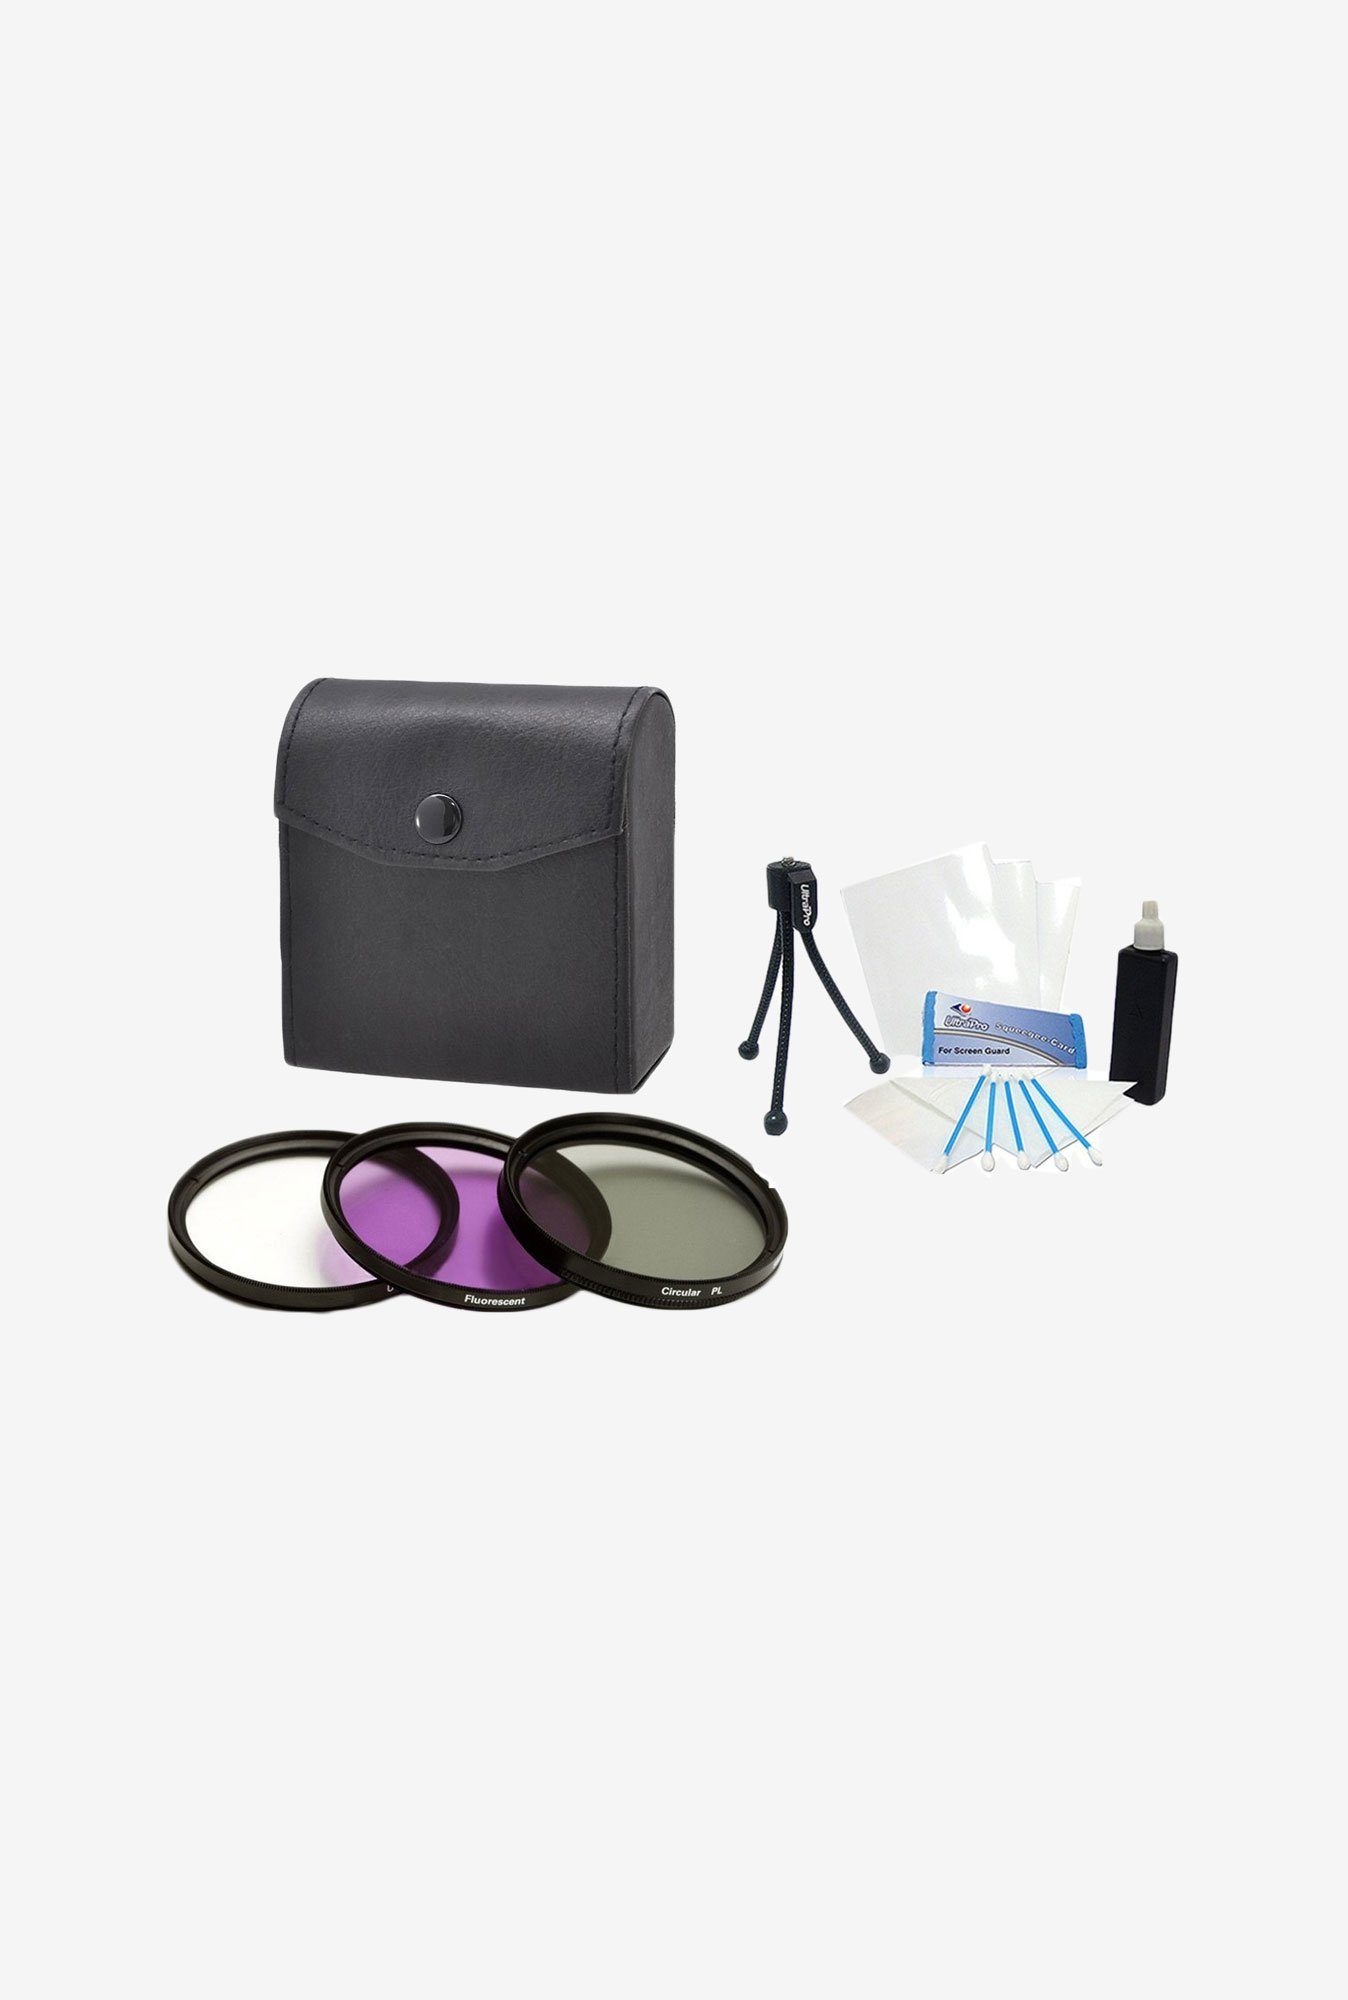 UltraPro 37 mm Filter Kit for Olympus Pen (Black)